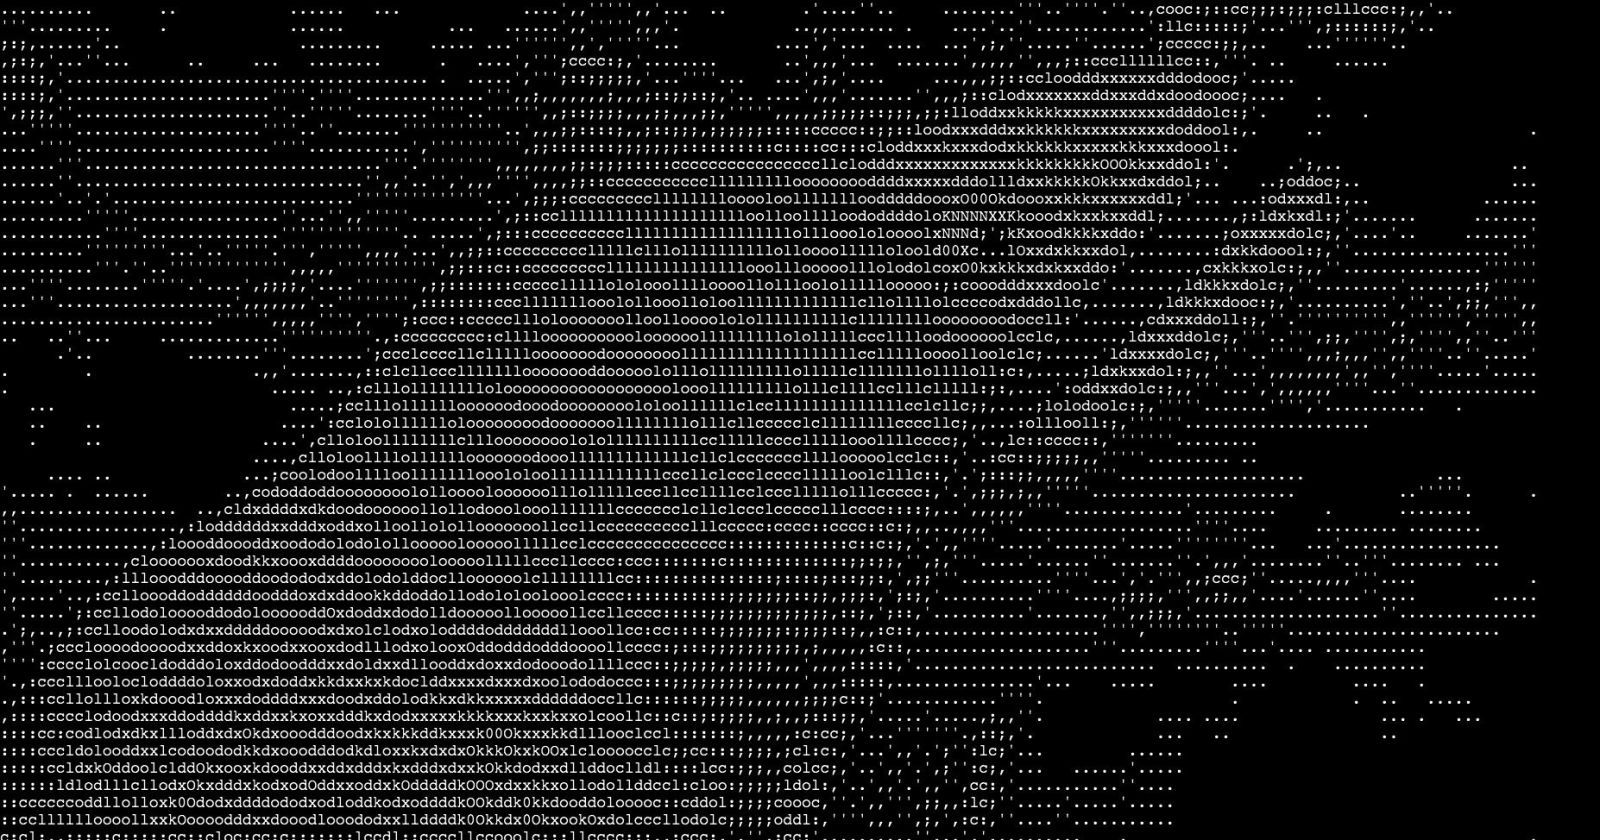 One Line Ascii Art Bat : Facebook secretly turns photos into weird ascii art